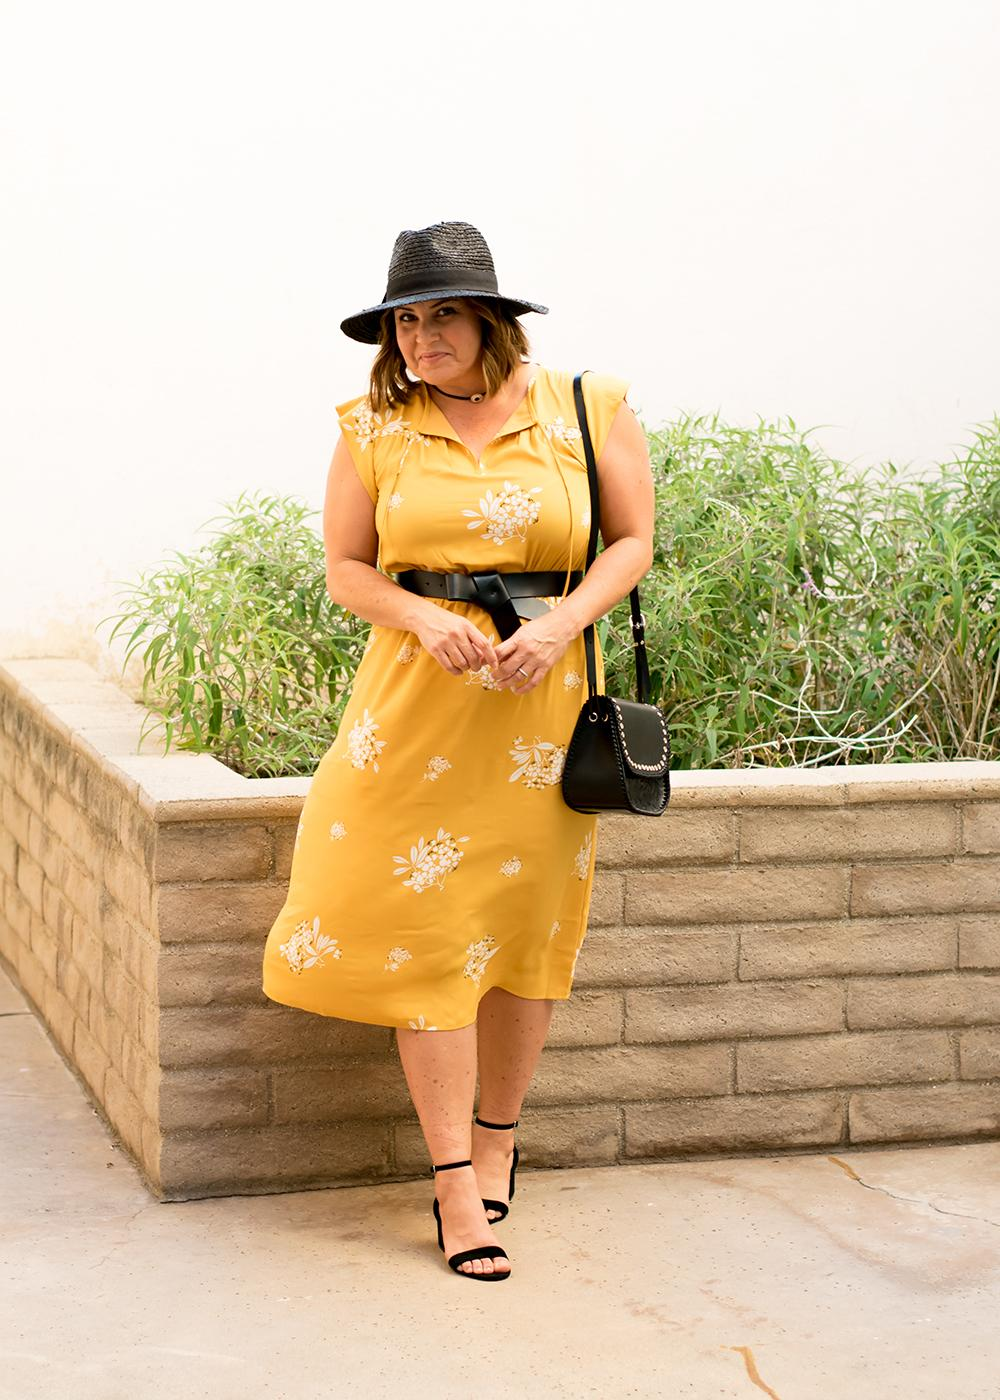 Casual-Outfit-Los-Angeles-Fashion-Street-Style-Blogger-Personal-Stylist-LOFT-Marigold-Midi-Dress-544